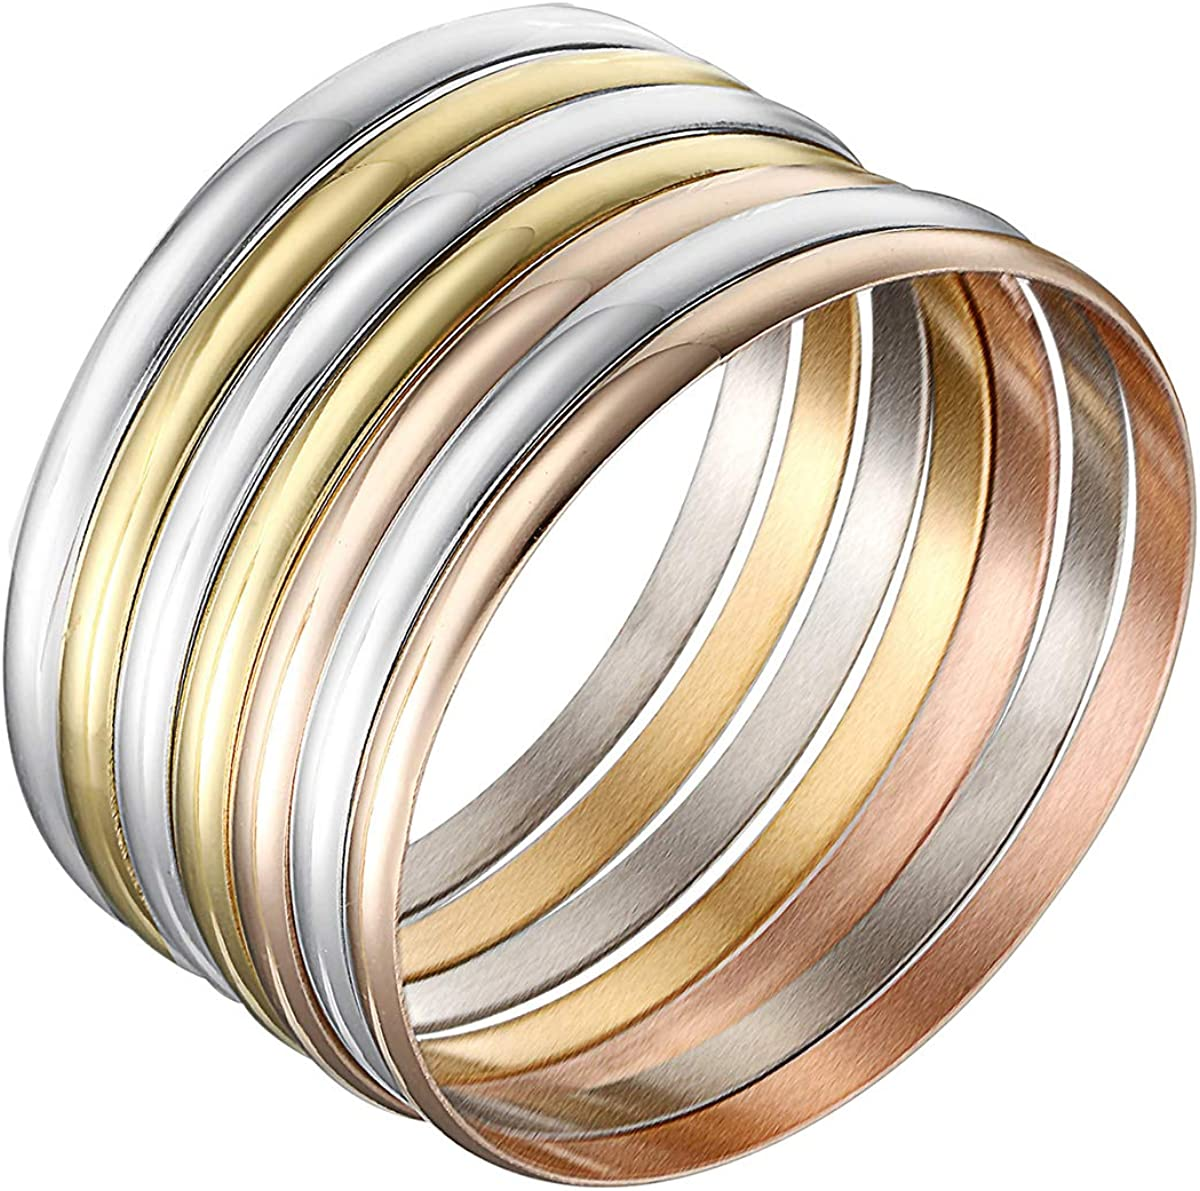 Castillna Set of 7 Tri-Color Silver/Gold/Rose Gold Stainless Steel Bangle Bracelet